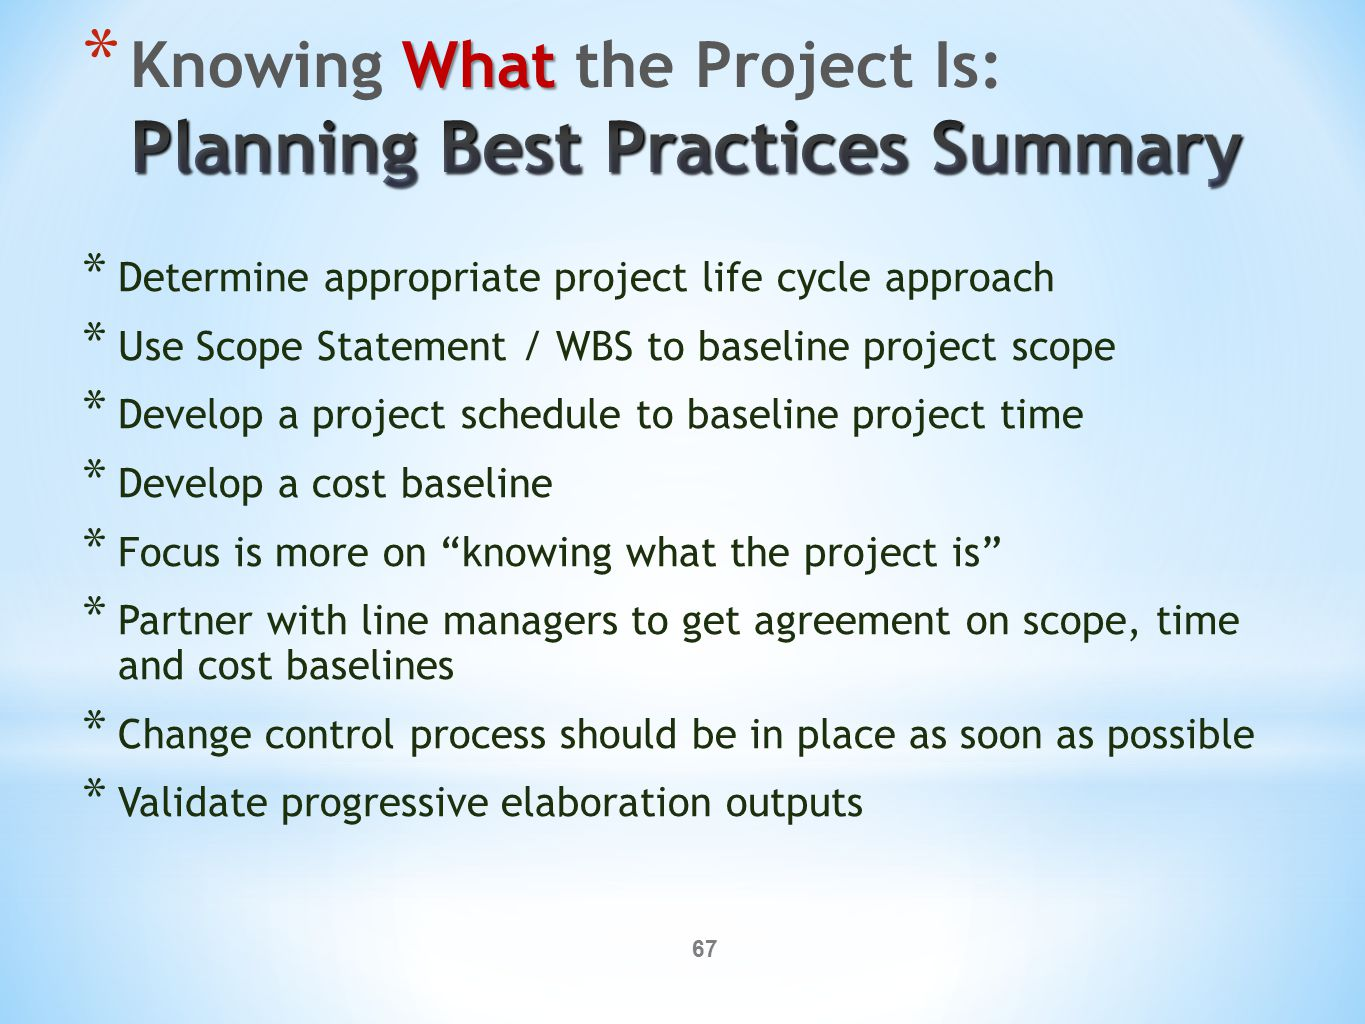 67 * Determine appropriate project life cycle approach * Use Scope Statement / WBS to baseline project scope * Develop a project schedule to baseline